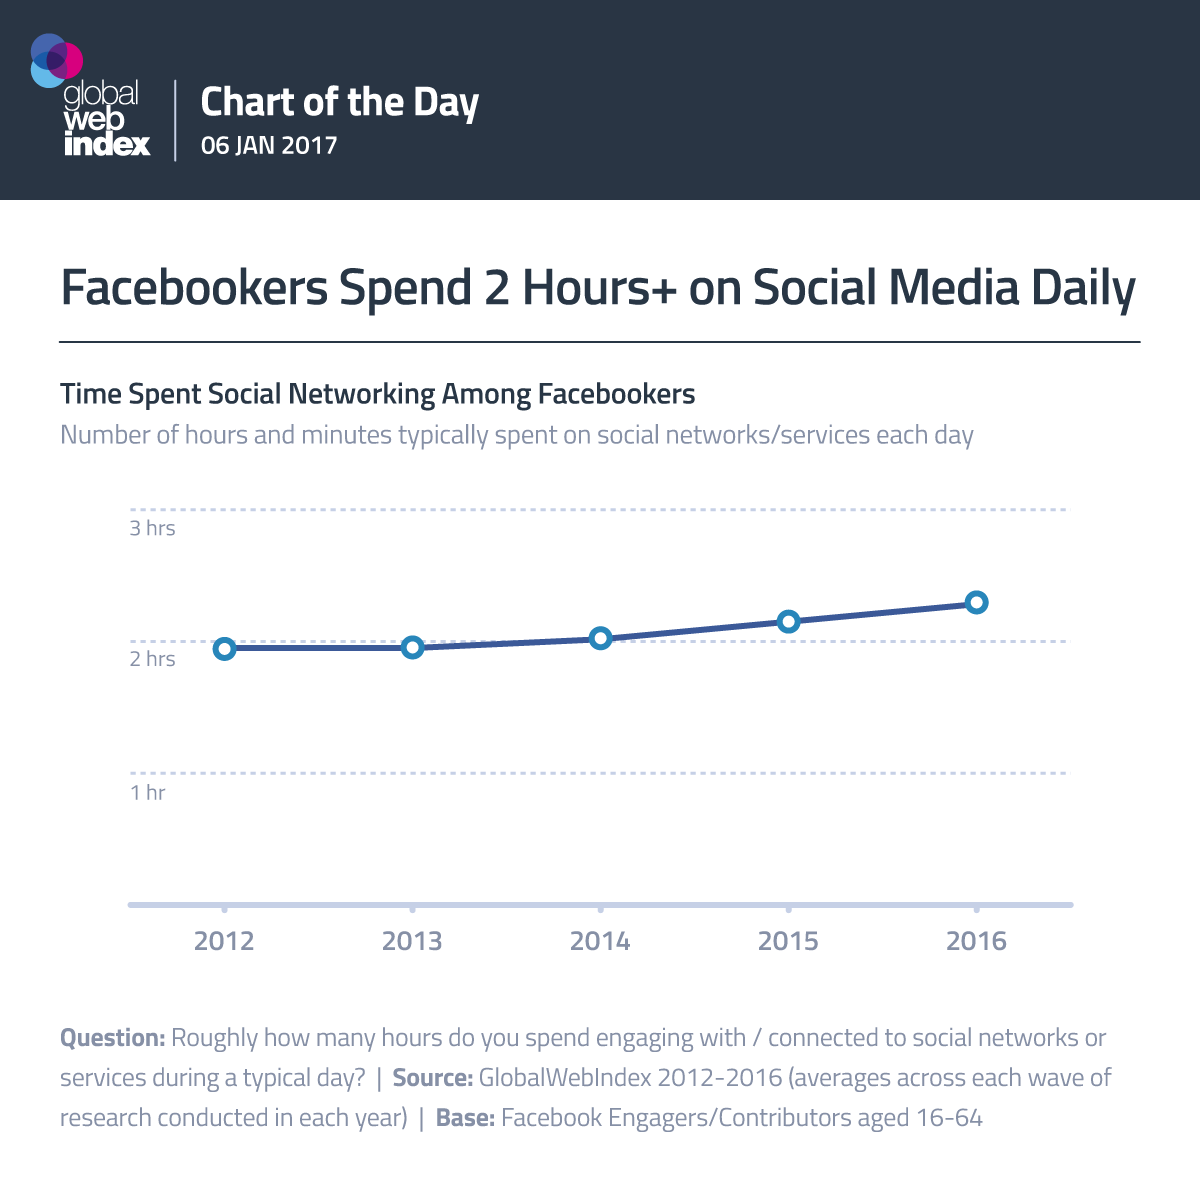 Facebookers Spend 2 Hours+ on Social Media Daily